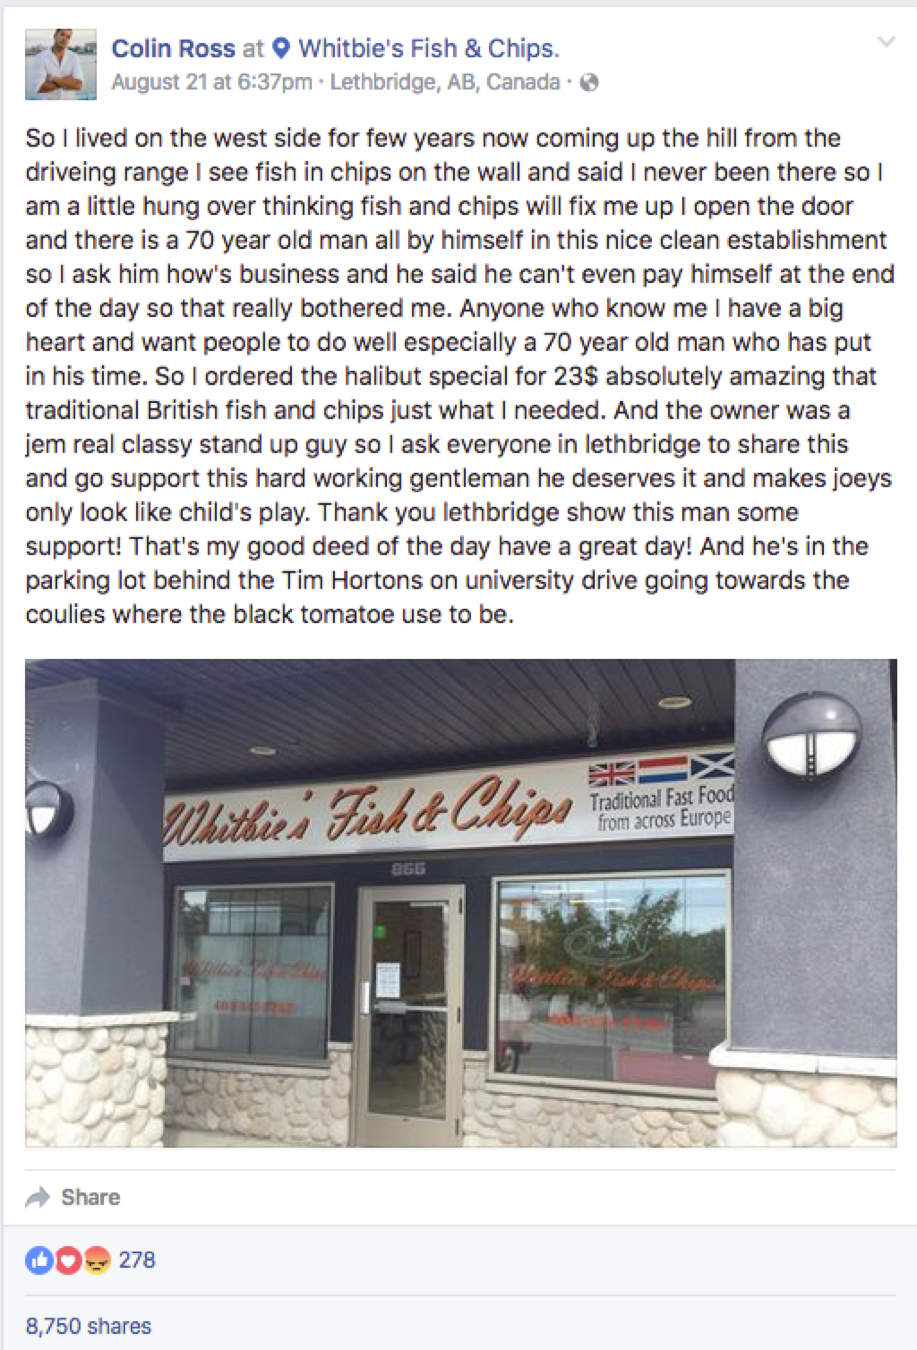 Colin Ross's heartfelt review of a local restaurants went viral on Facebook